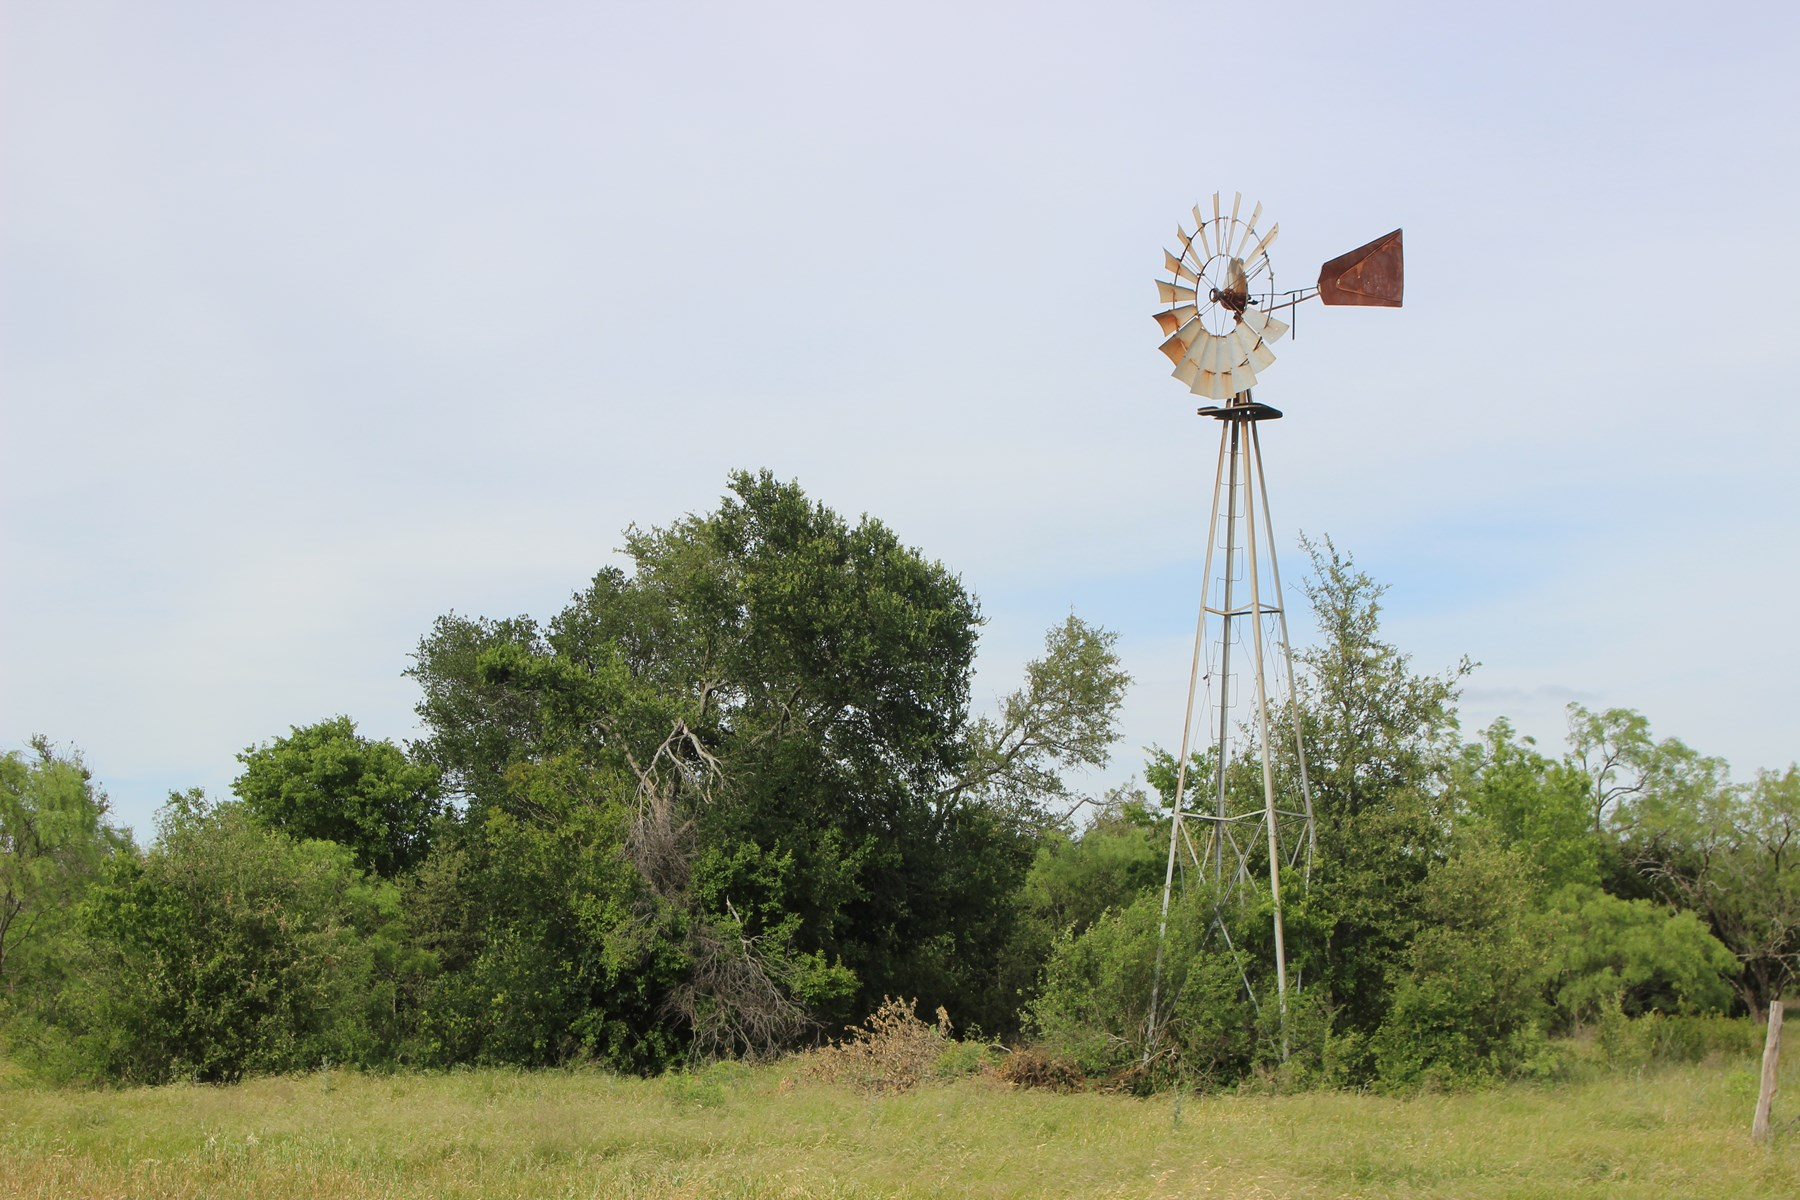 Land for Sale in Texas - 49+/- Acres in Hamilton County